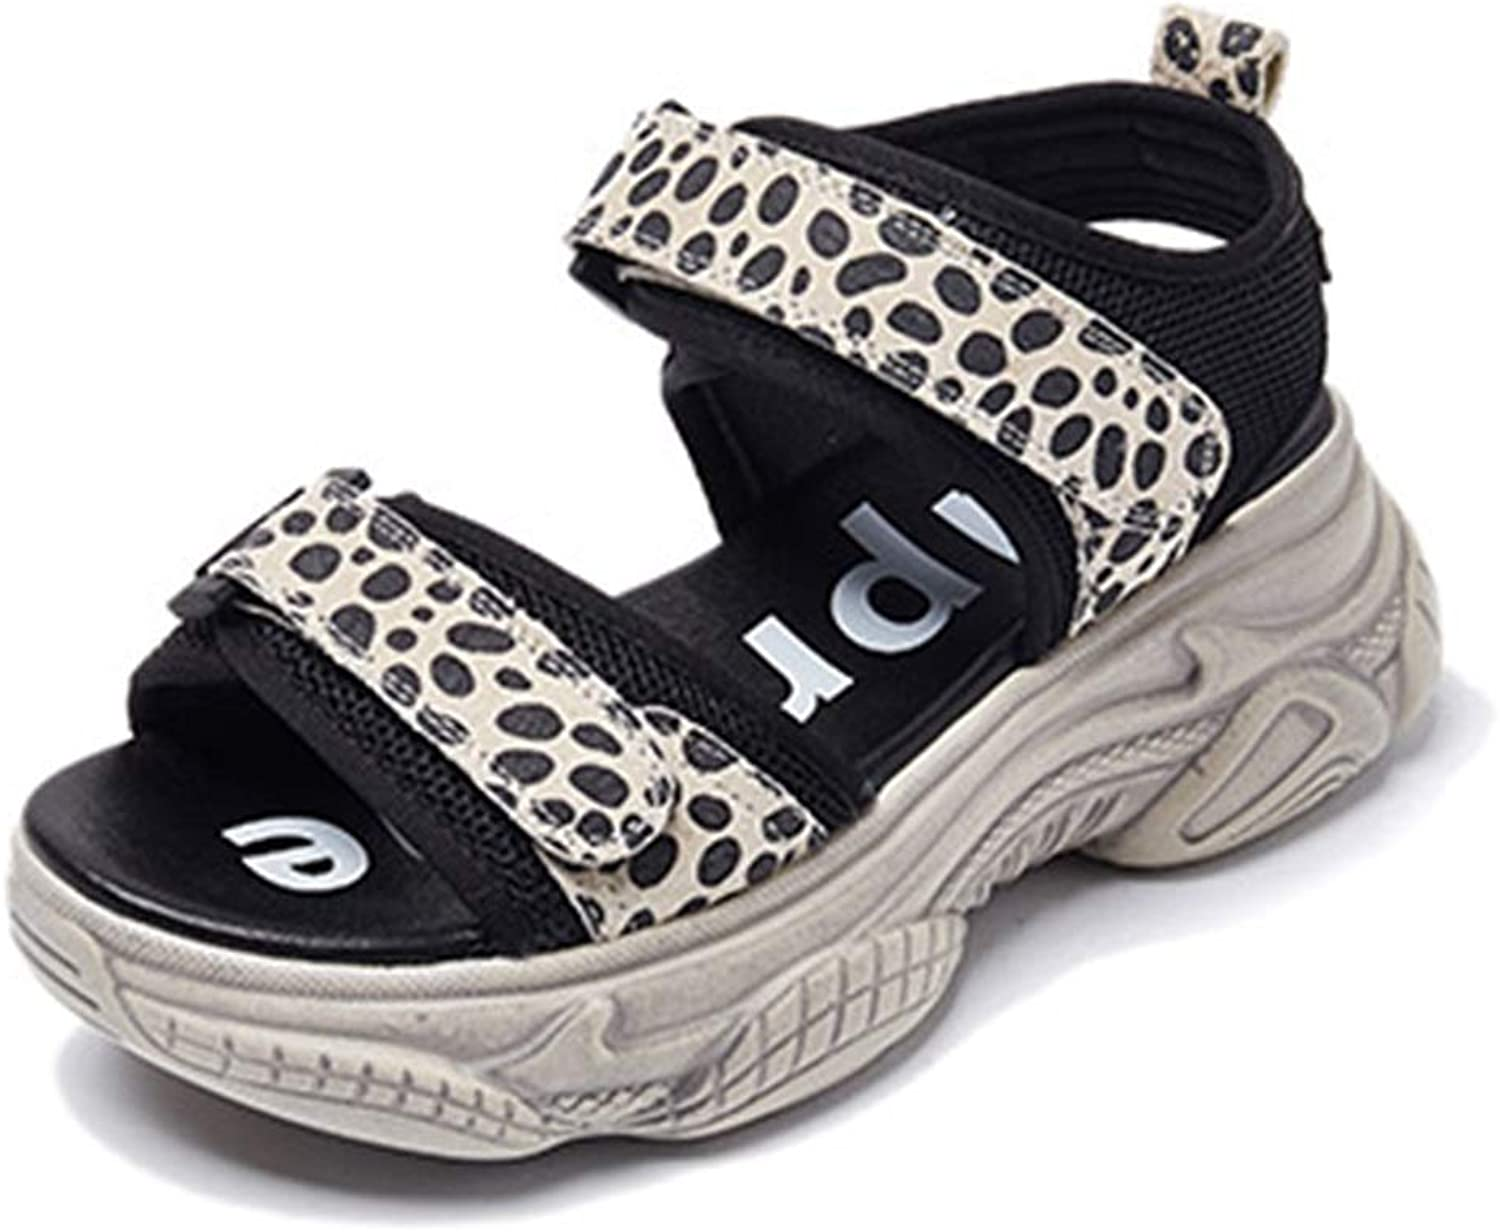 Velcro Thick-Soled Sandals Summer Sports Casual shoes Increased Platform shoes Wild Beach Sandals Mid Heel Sandals for Women Increased, Thin (color   Leopard, Size   39 US8)